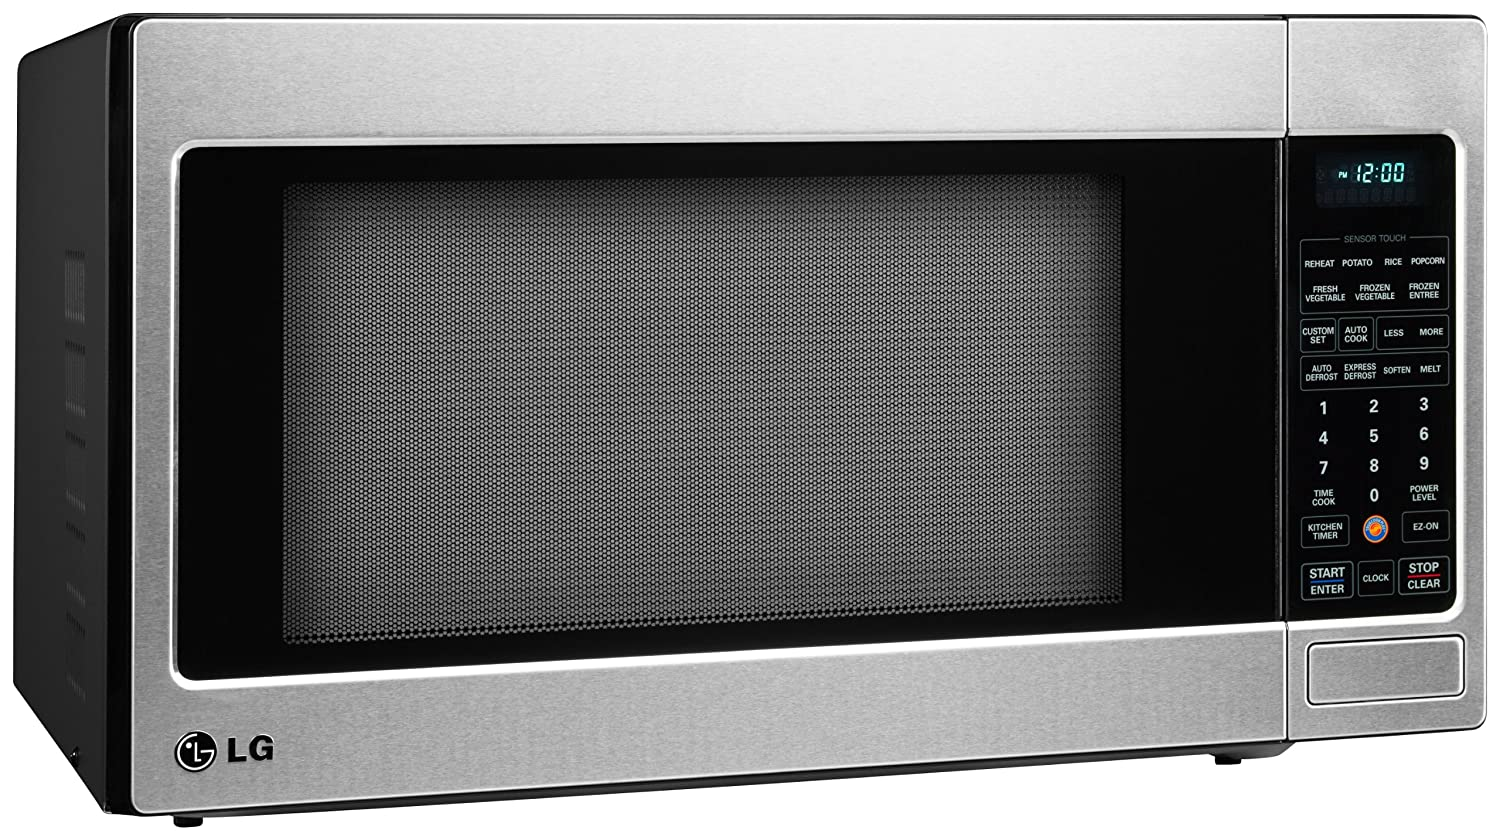 LG LCRT2010ST Microwave Oven